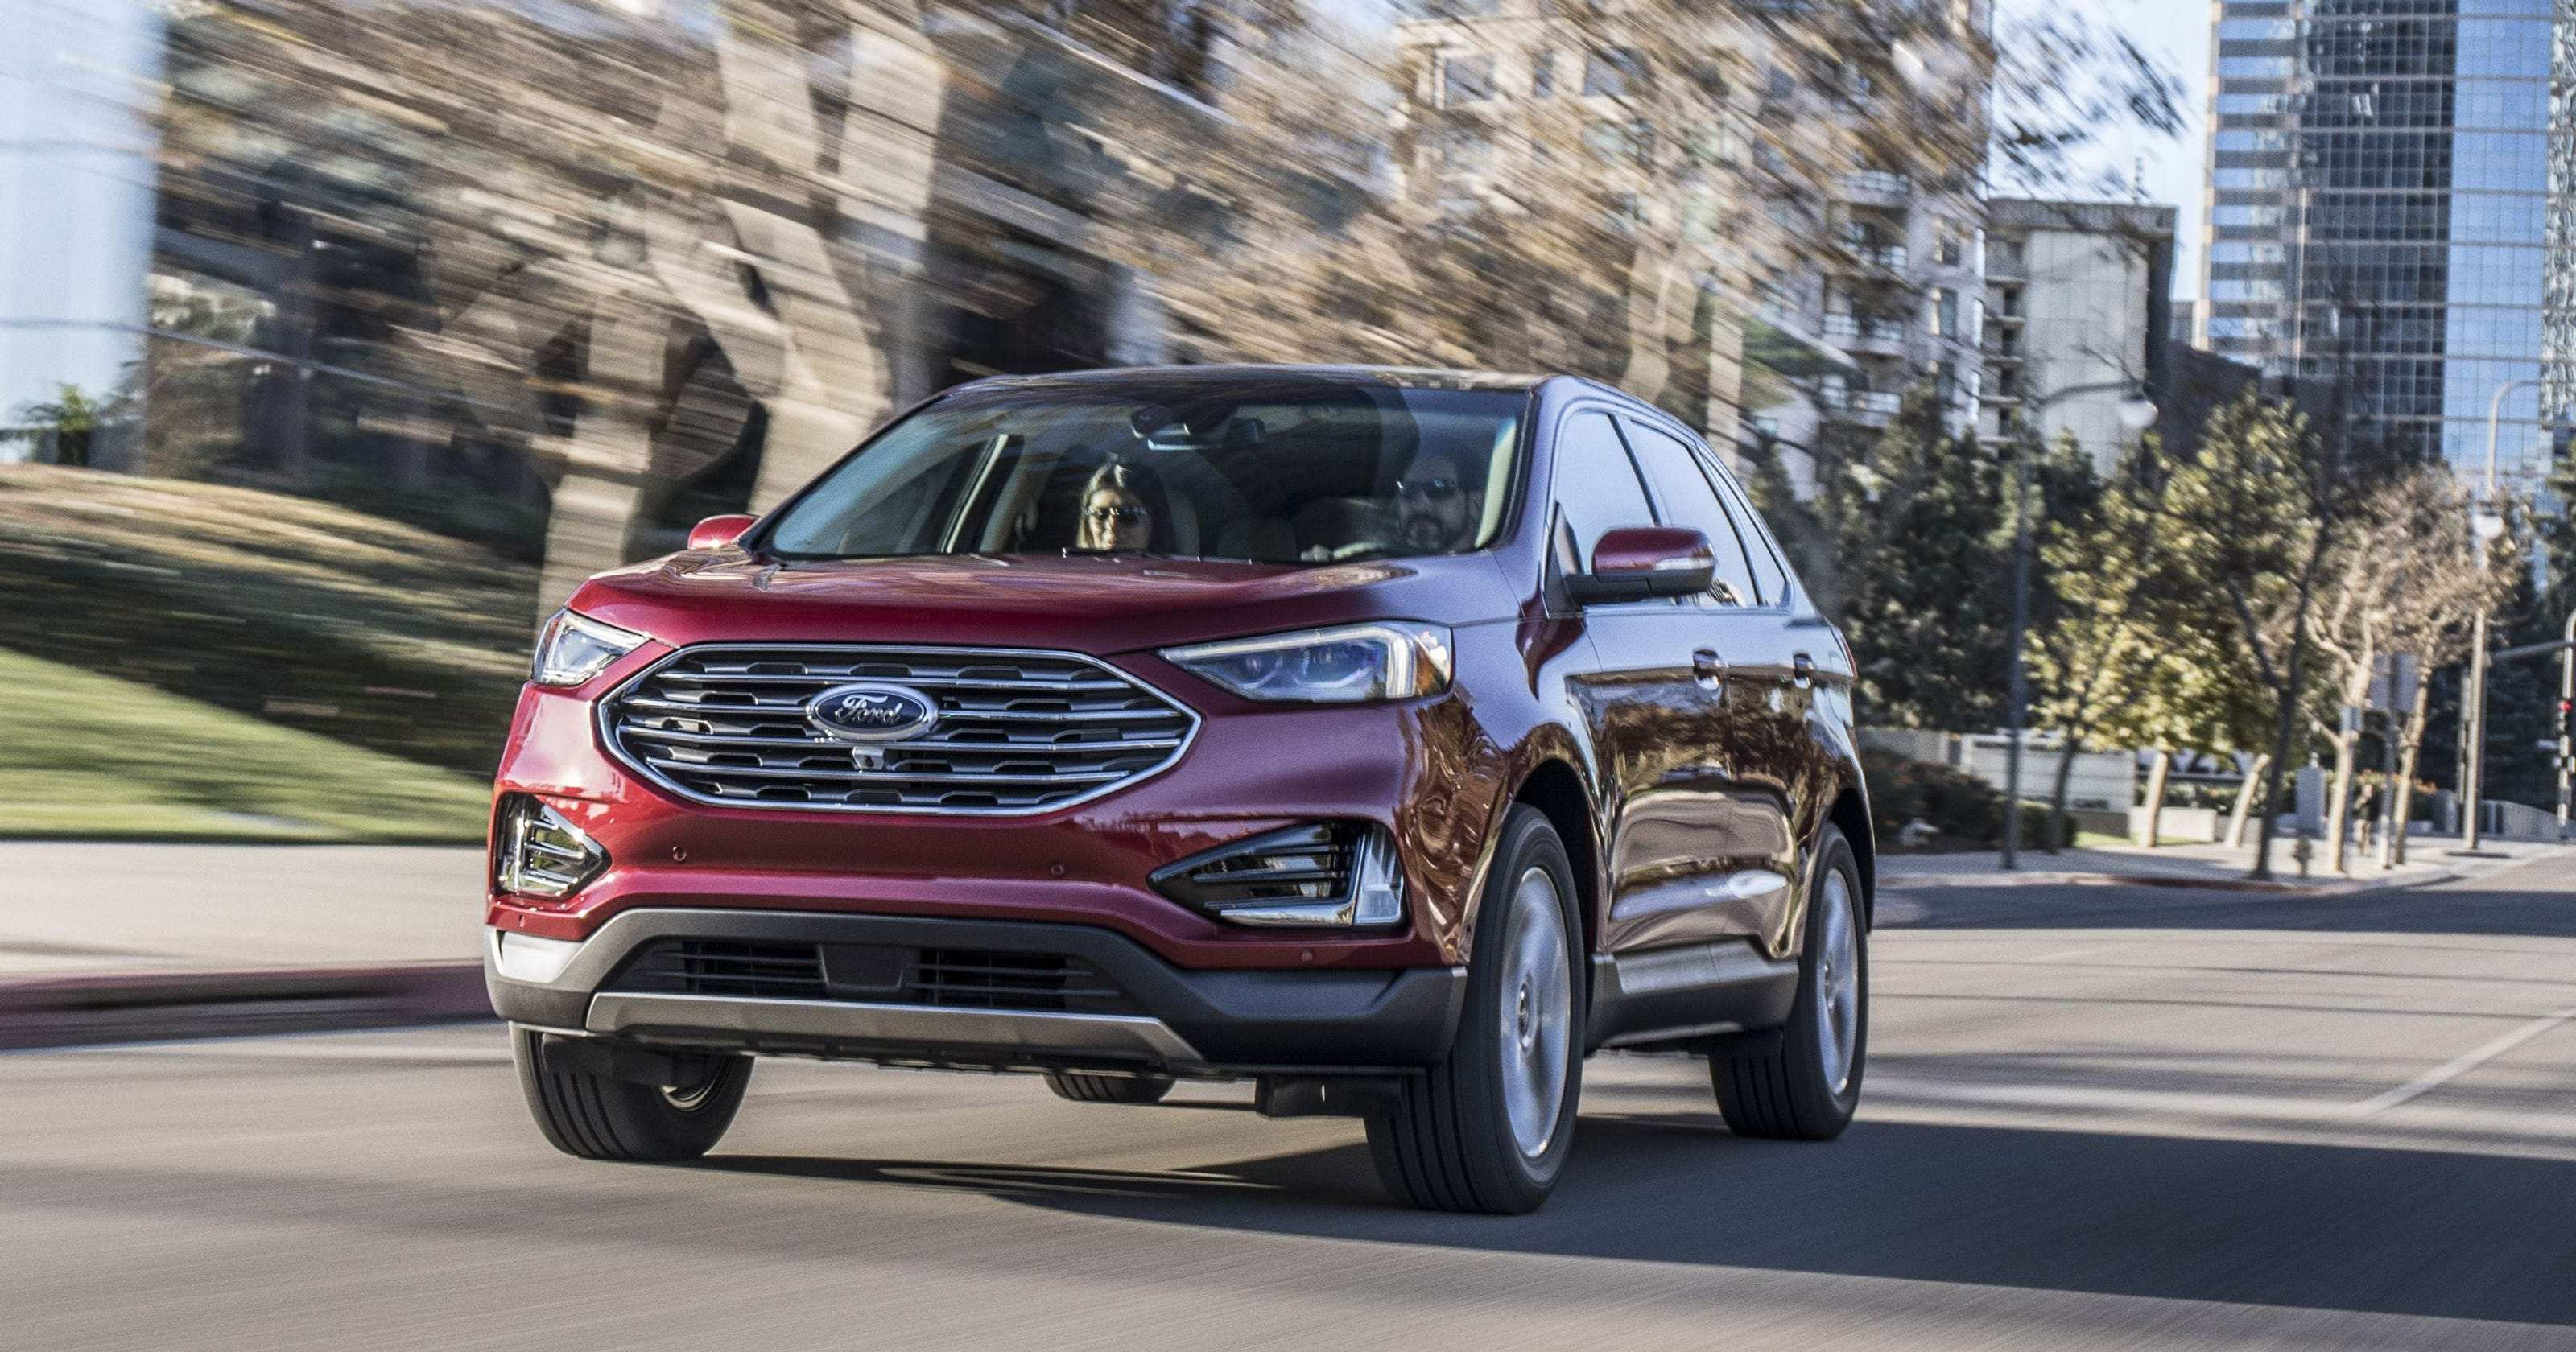 64 All New Ford Edge New Design Exterior And Interior